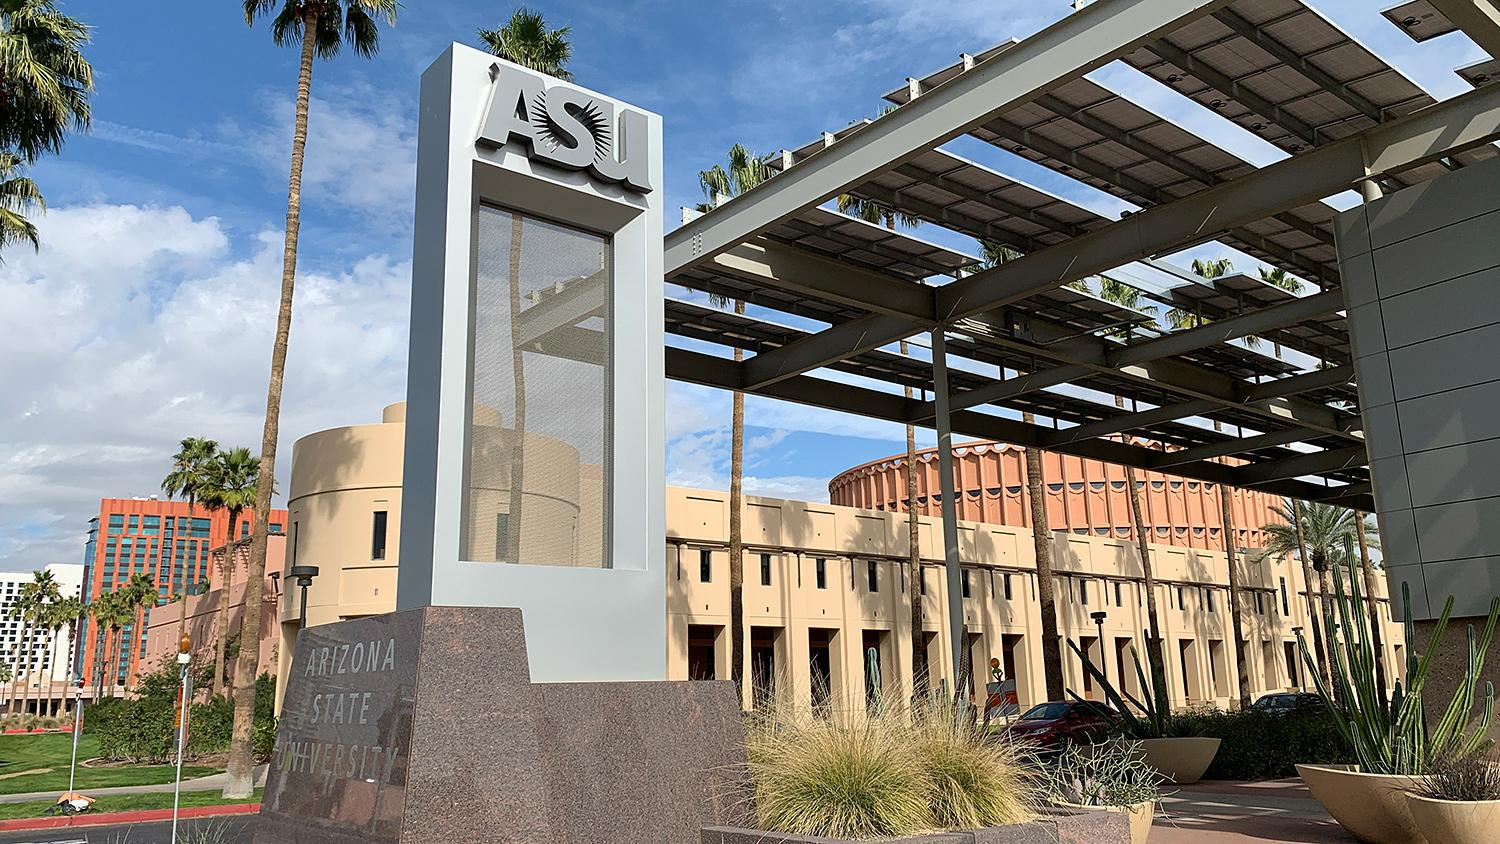 ASU Arizona State University